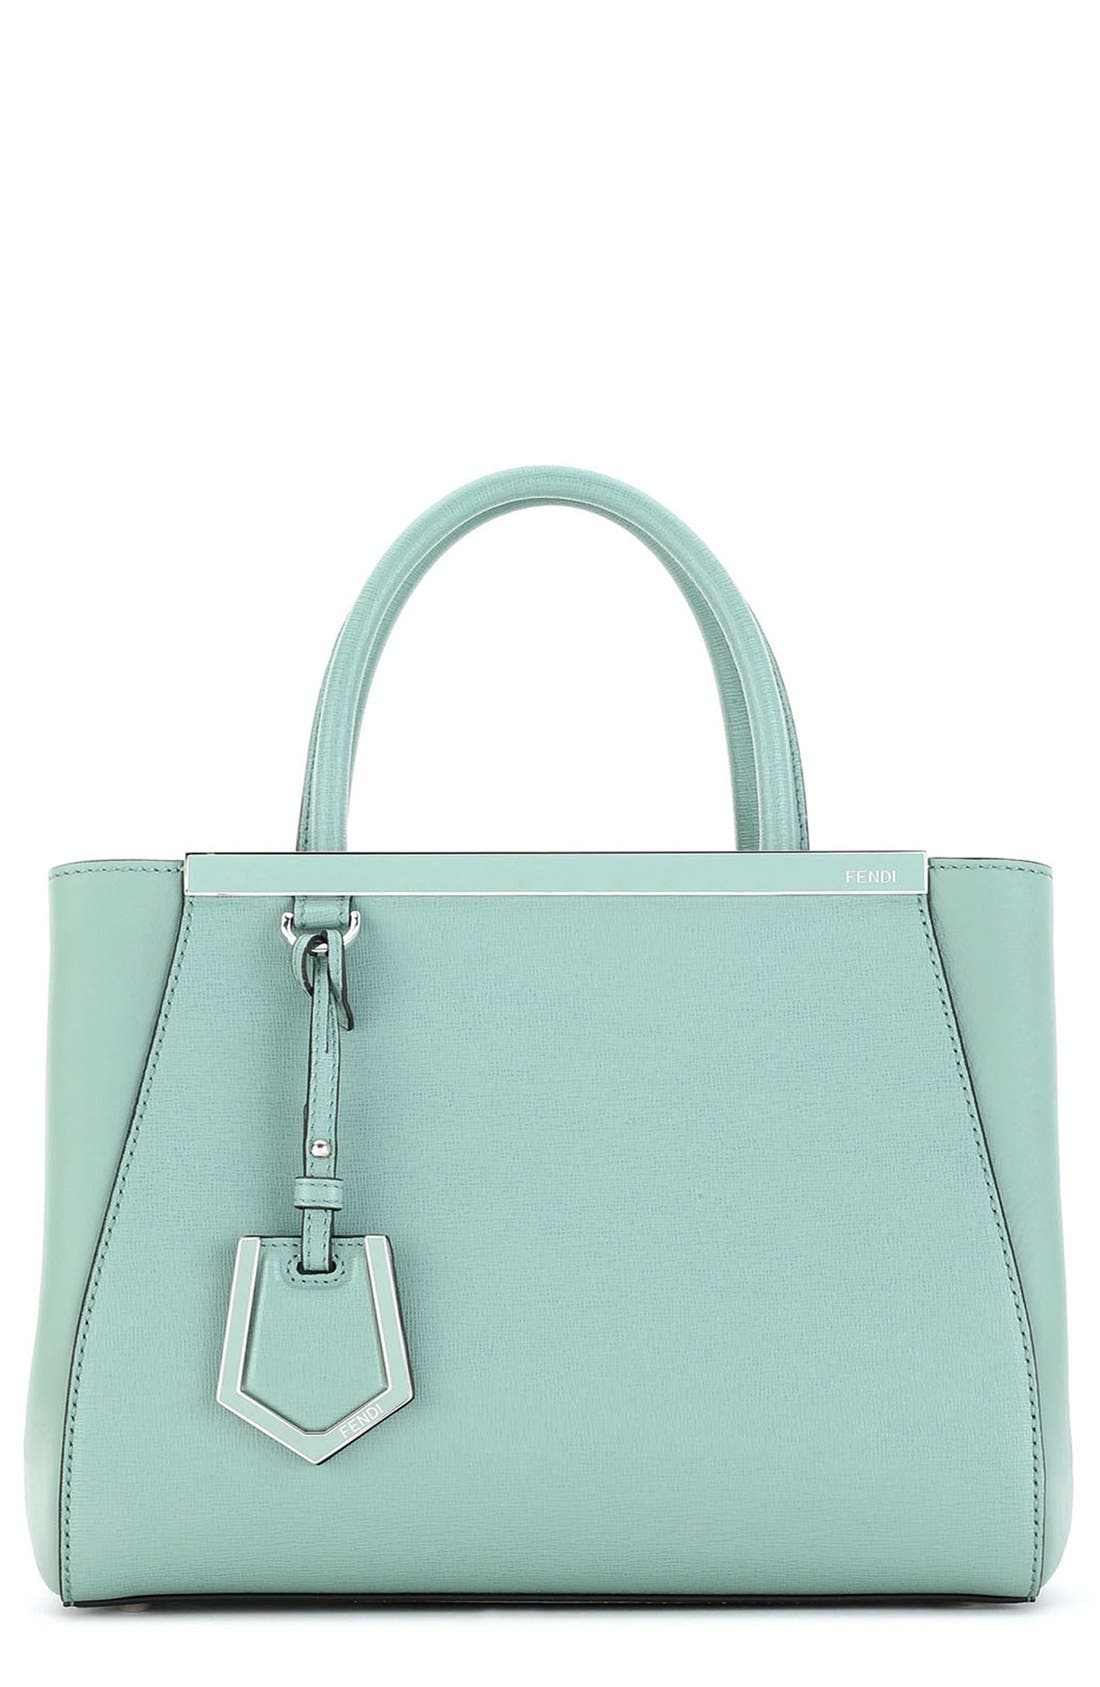 FENDI, 'Petite 2Jours Elite' Leather Shopper, Main thumbnail 1, color, 439